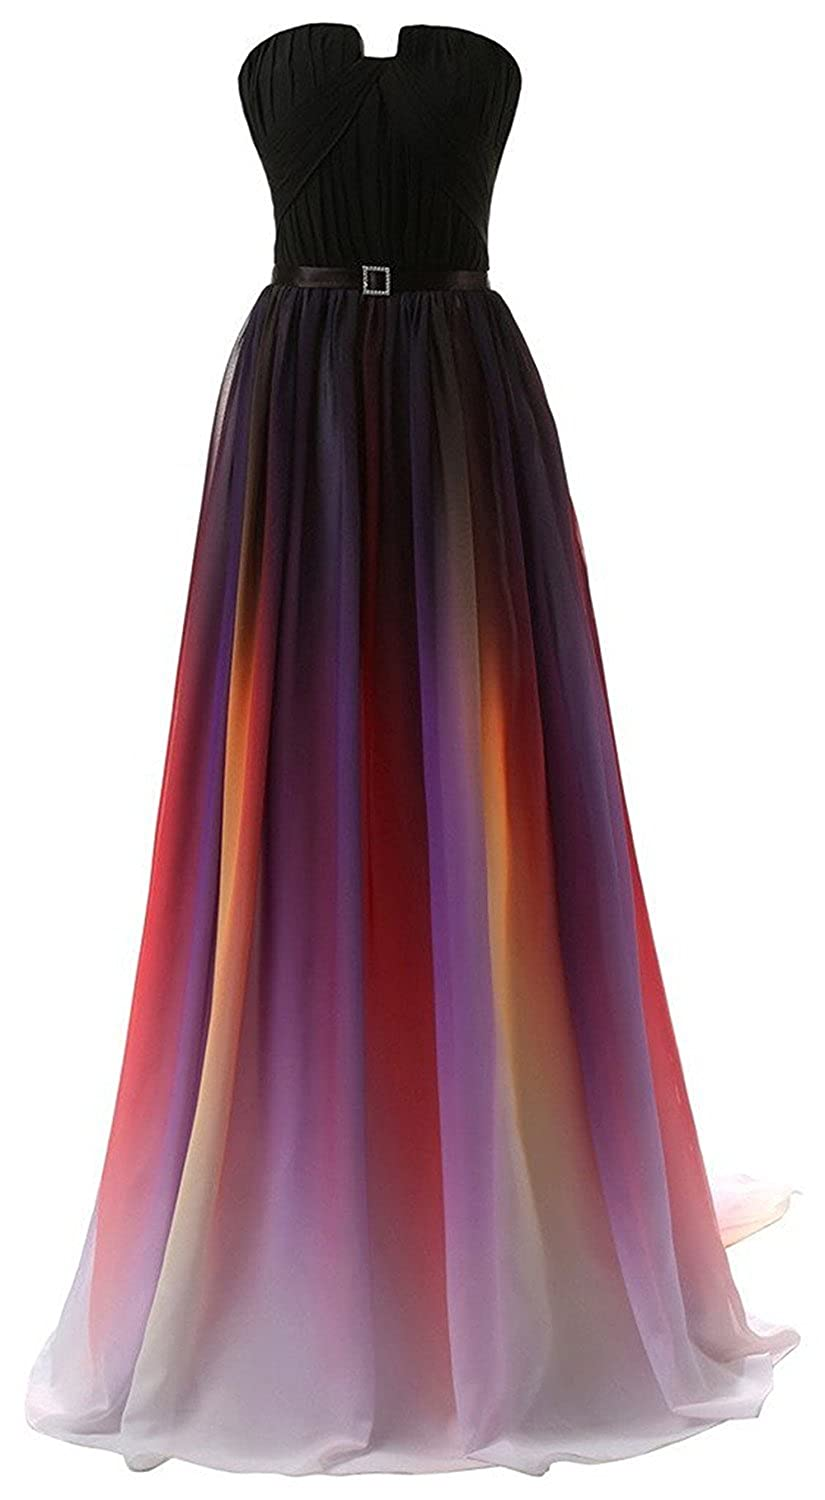 Diansheng Womens Gradient colorful Chiffon Long Formal Evening Prom Dresses colorful us12 at Amazon Womens Clothing store: